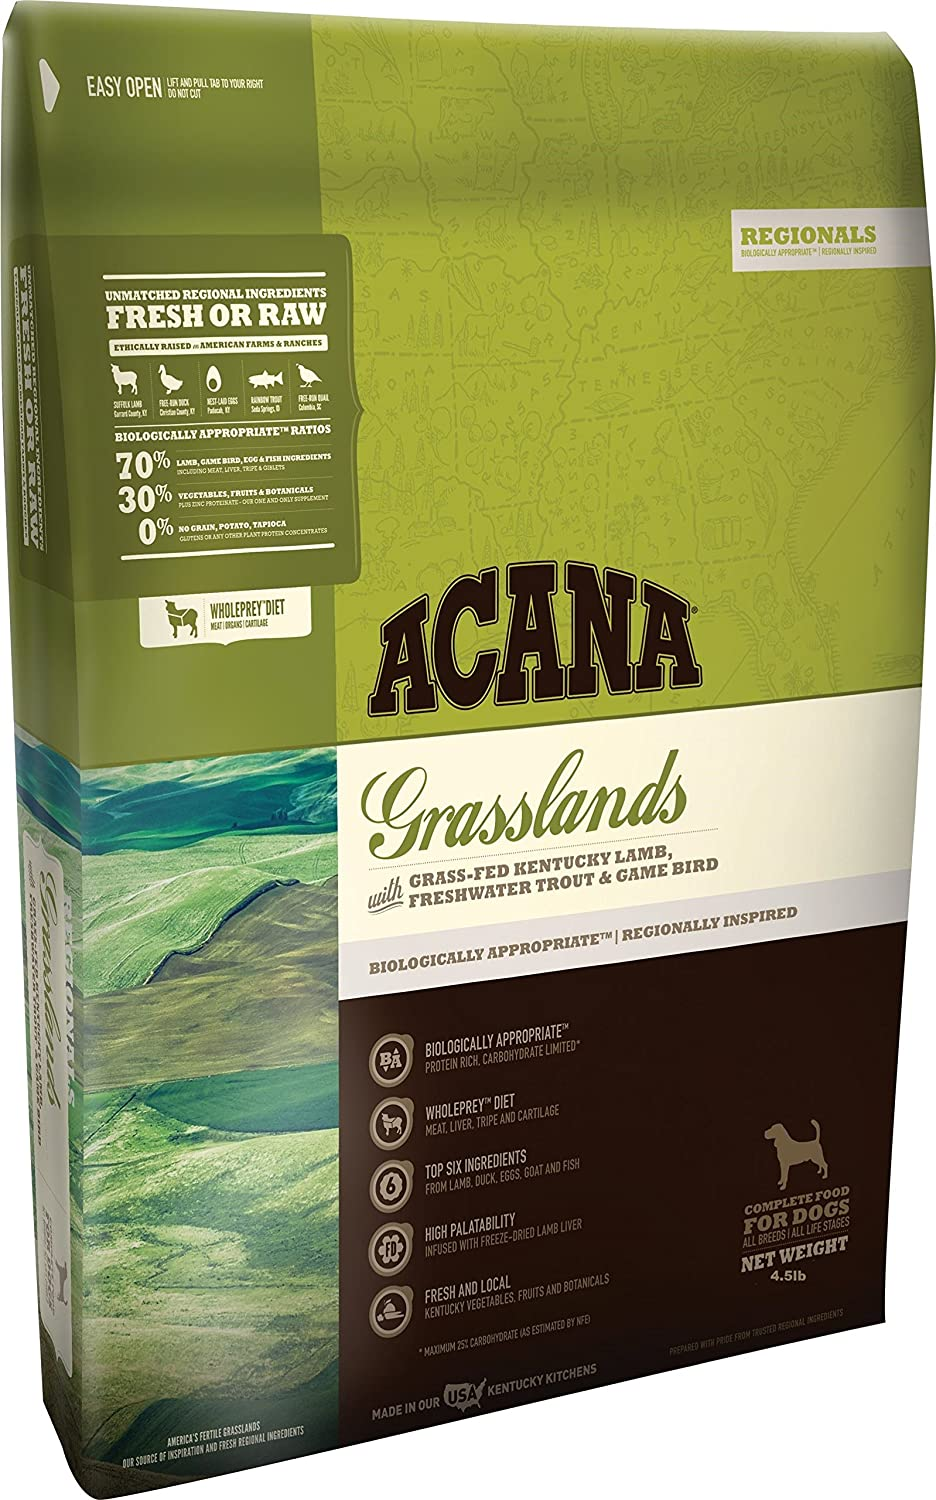 Acana Regionals Grasslands for Dogs, 4.5lbs